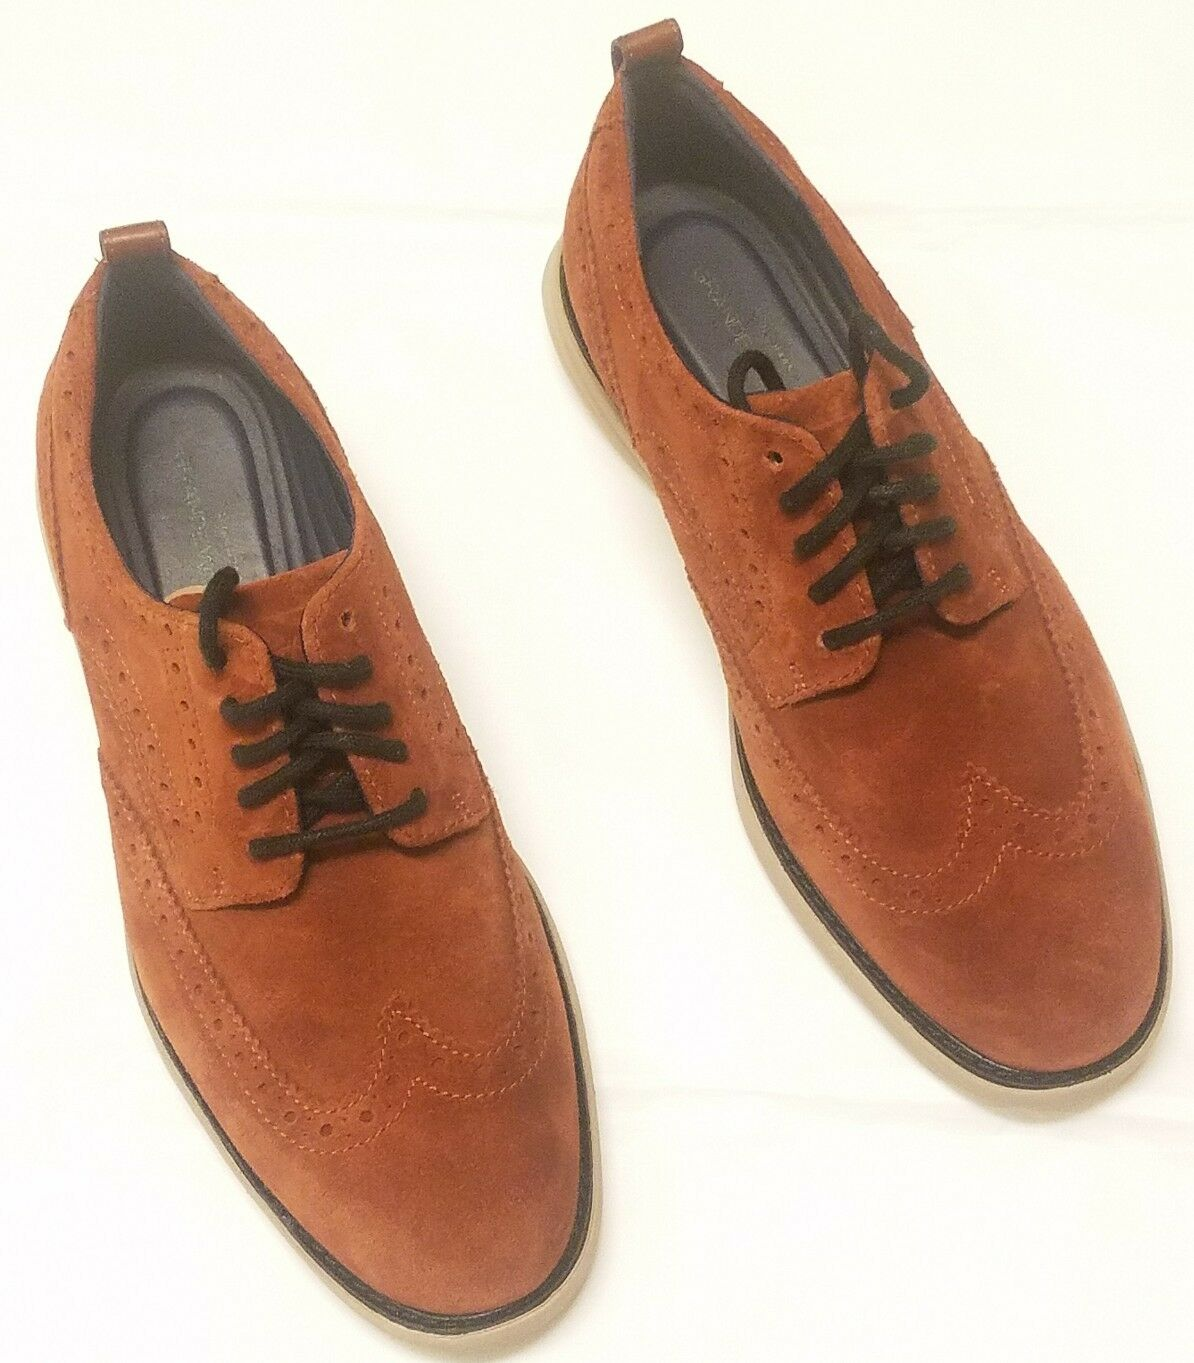 COLE HAAN Grand Evolution Brown Suede Wingtip 8 Oxford Shoes (C26314) Size 8 Wingtip US 746540